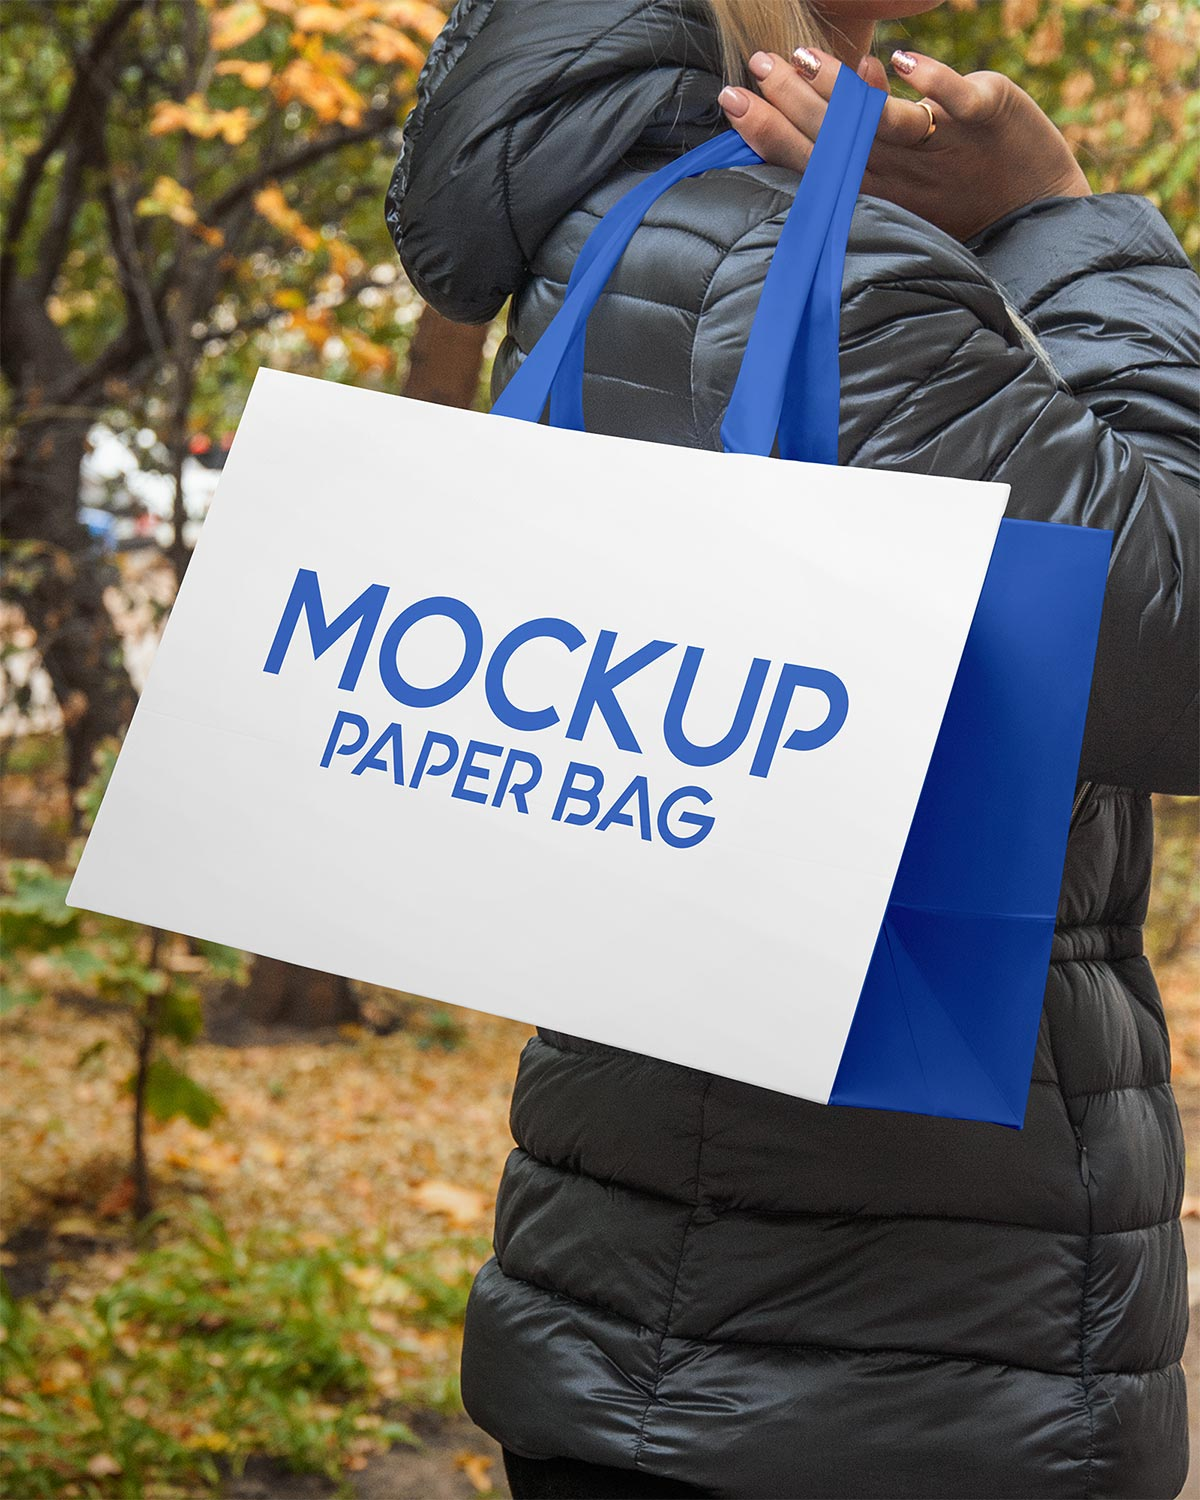 Free Hand Holding Paper Shopping Bag Mockup PSD Set